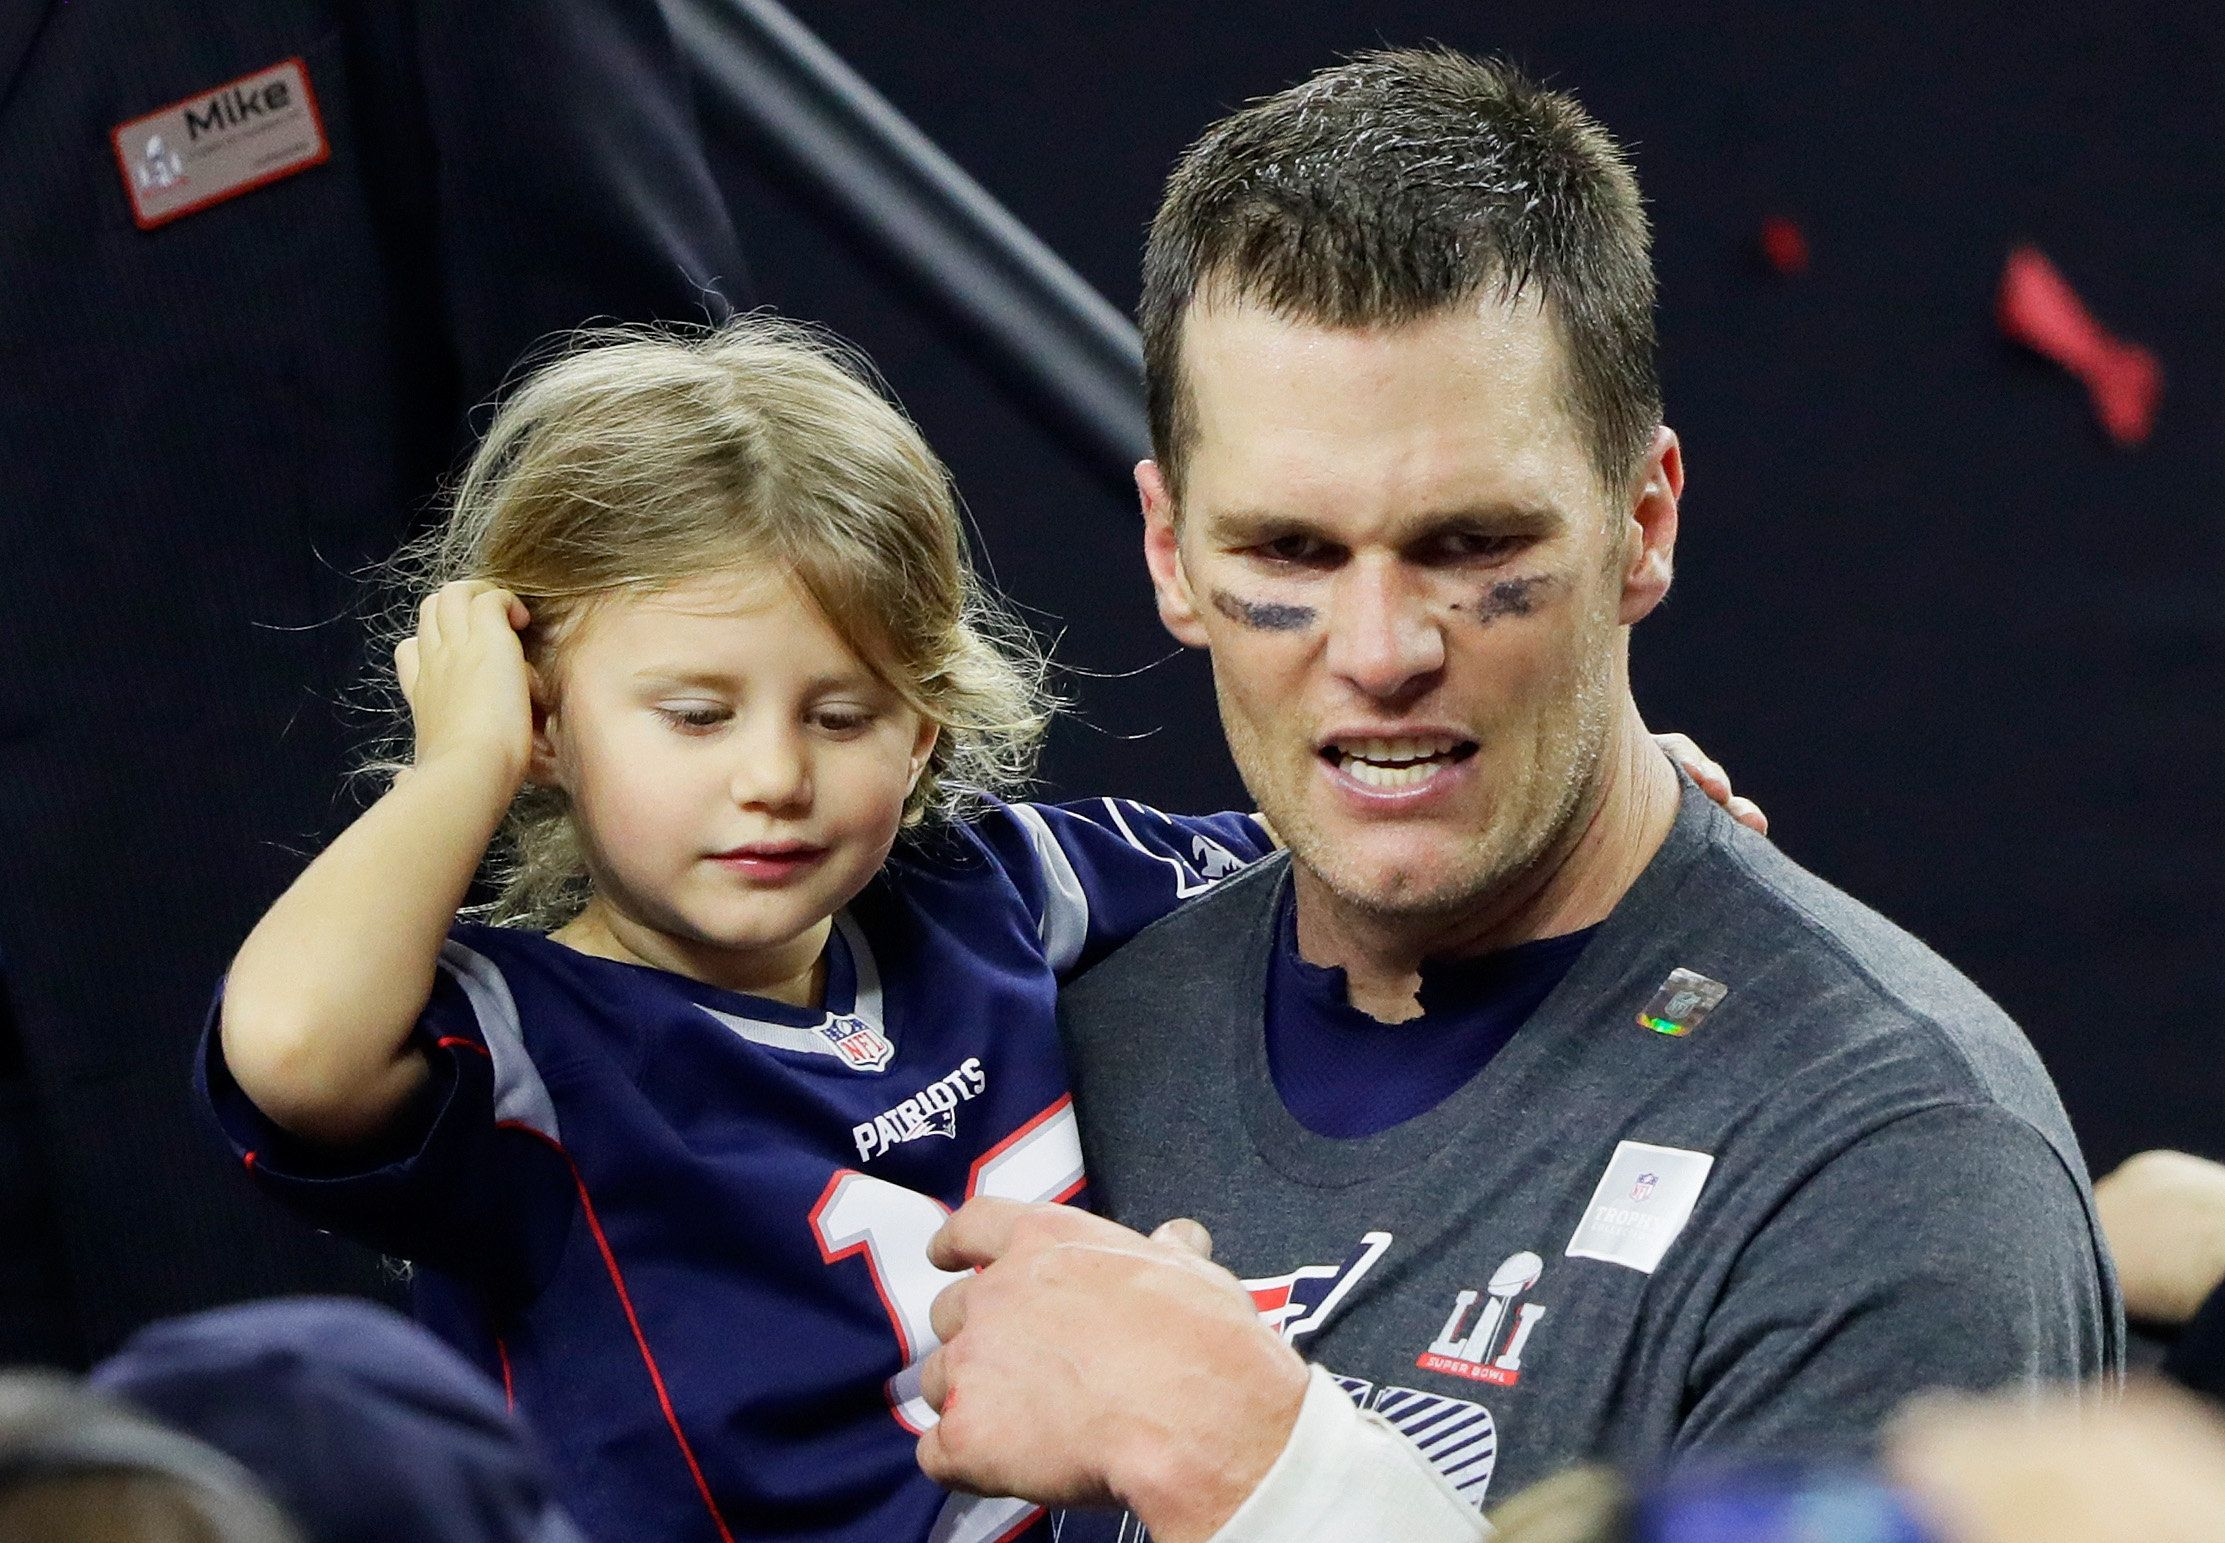 Vivian and dad after the Patriots' Super Bowl victory last year.